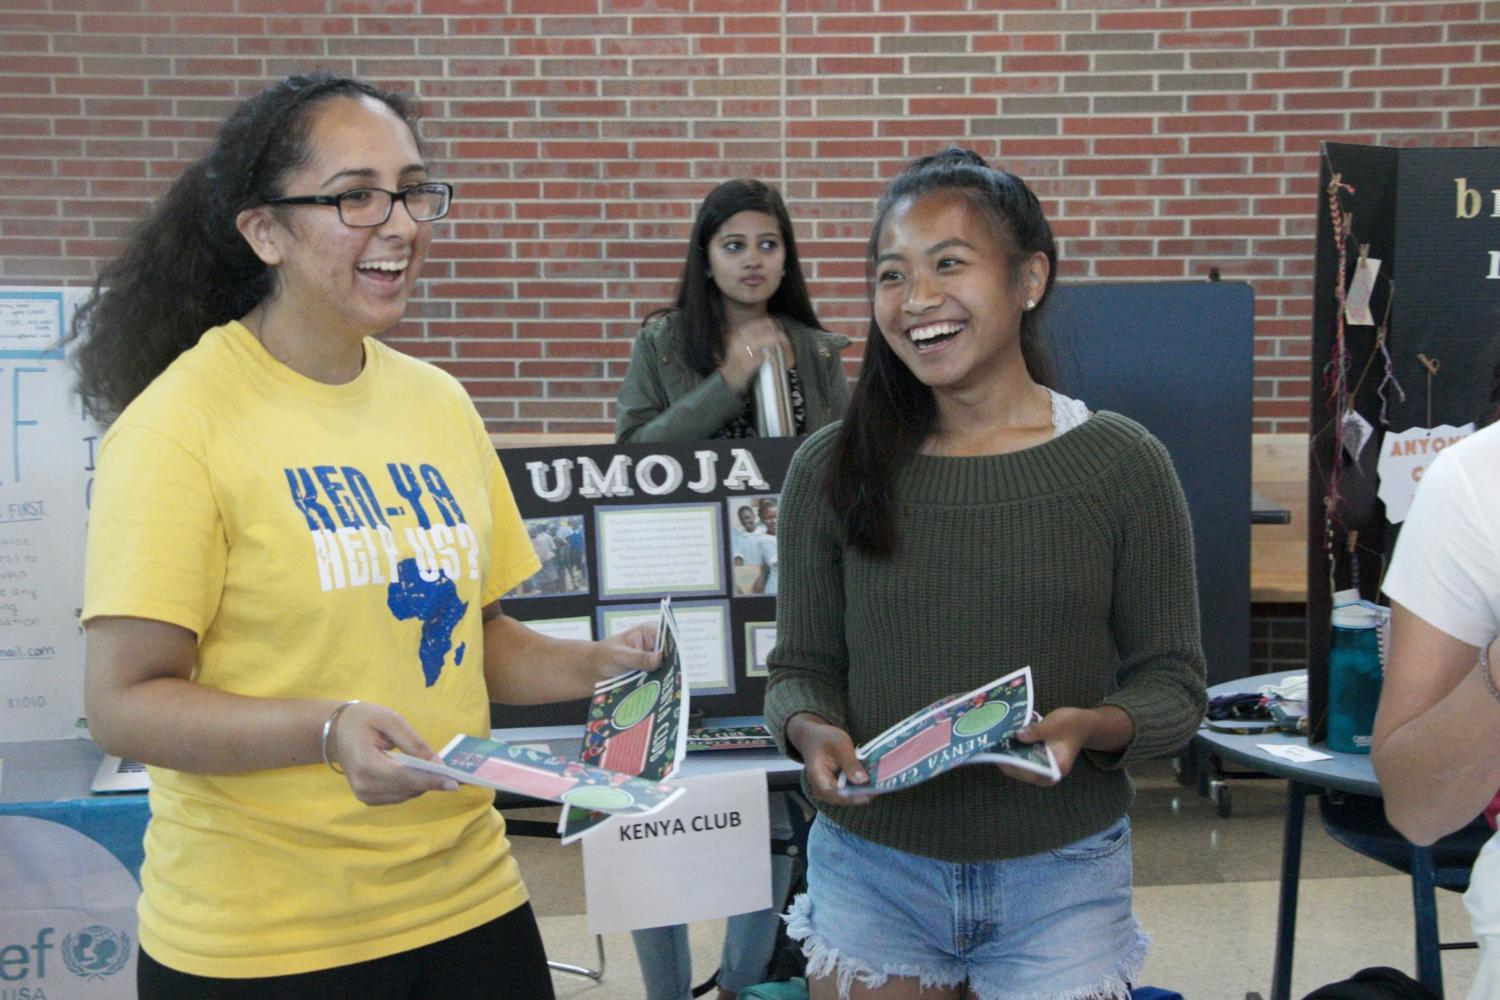 At the activities fair, Mandeep Dhillon, Kenya Club president and junior (left), and Rene Pin, Kenya Club member and junior (right), pass out Kenya Club flyers. Dhillon said one of her goals for Kenya Club this year is to gain new members and expand the club within CHS.